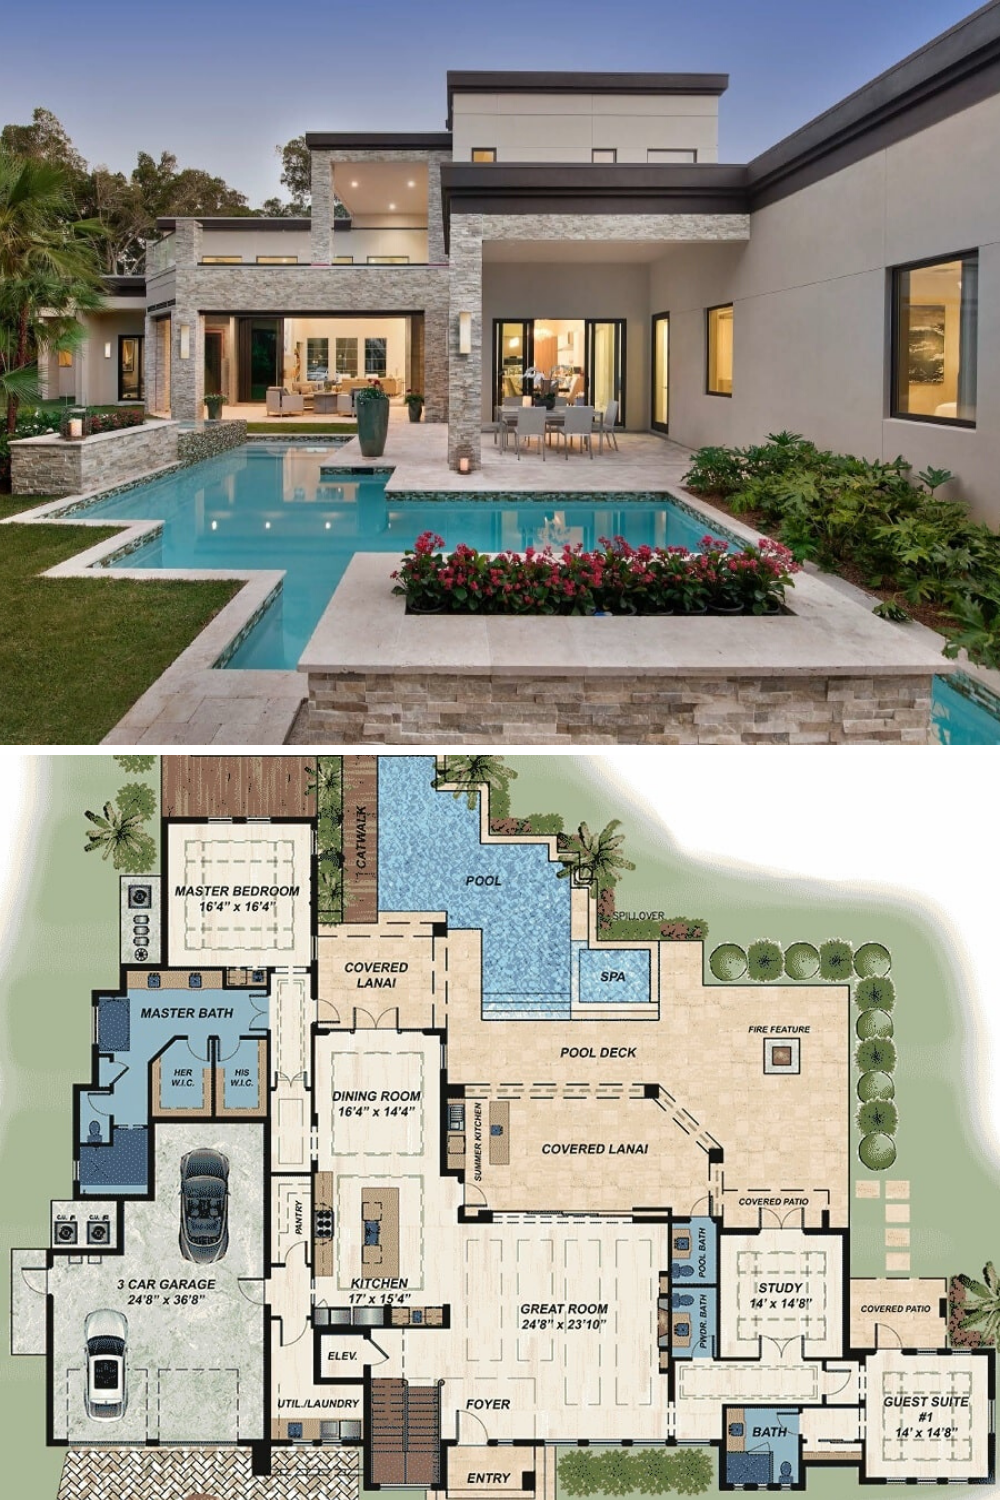 Two Story 4 Bedroom Modern Florida Home Floor Plan Beautiful House Plans Modern Style House Plans Sims House Plans